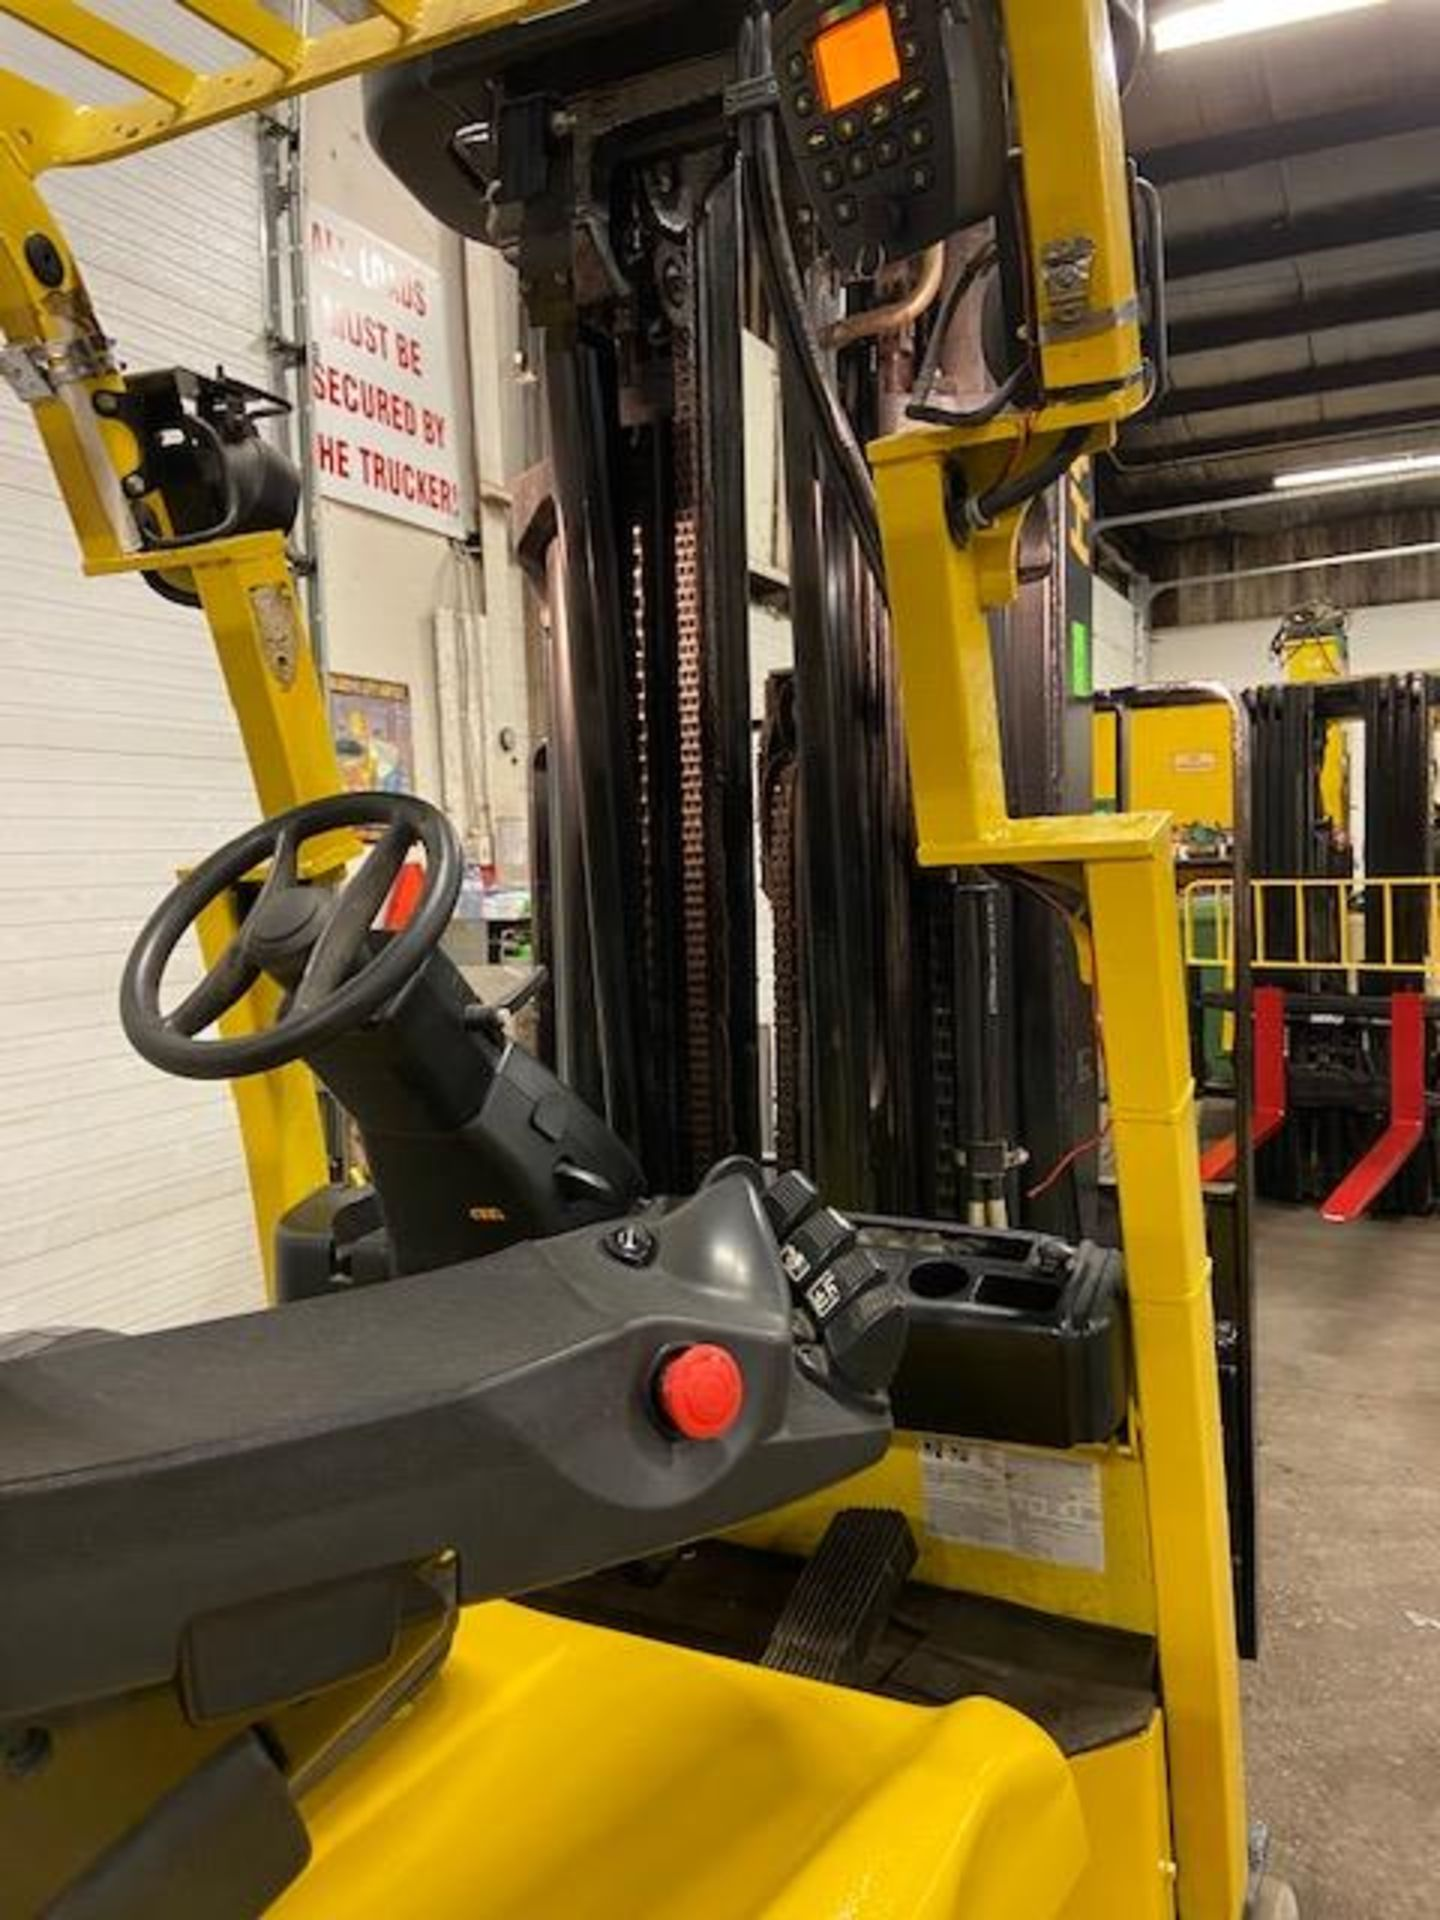 FREE CUSTOMS - 2015 Hyster 5000lbs Capacity Forklift Electric with 4-STAGE MAST with sideshift & - Image 2 of 4